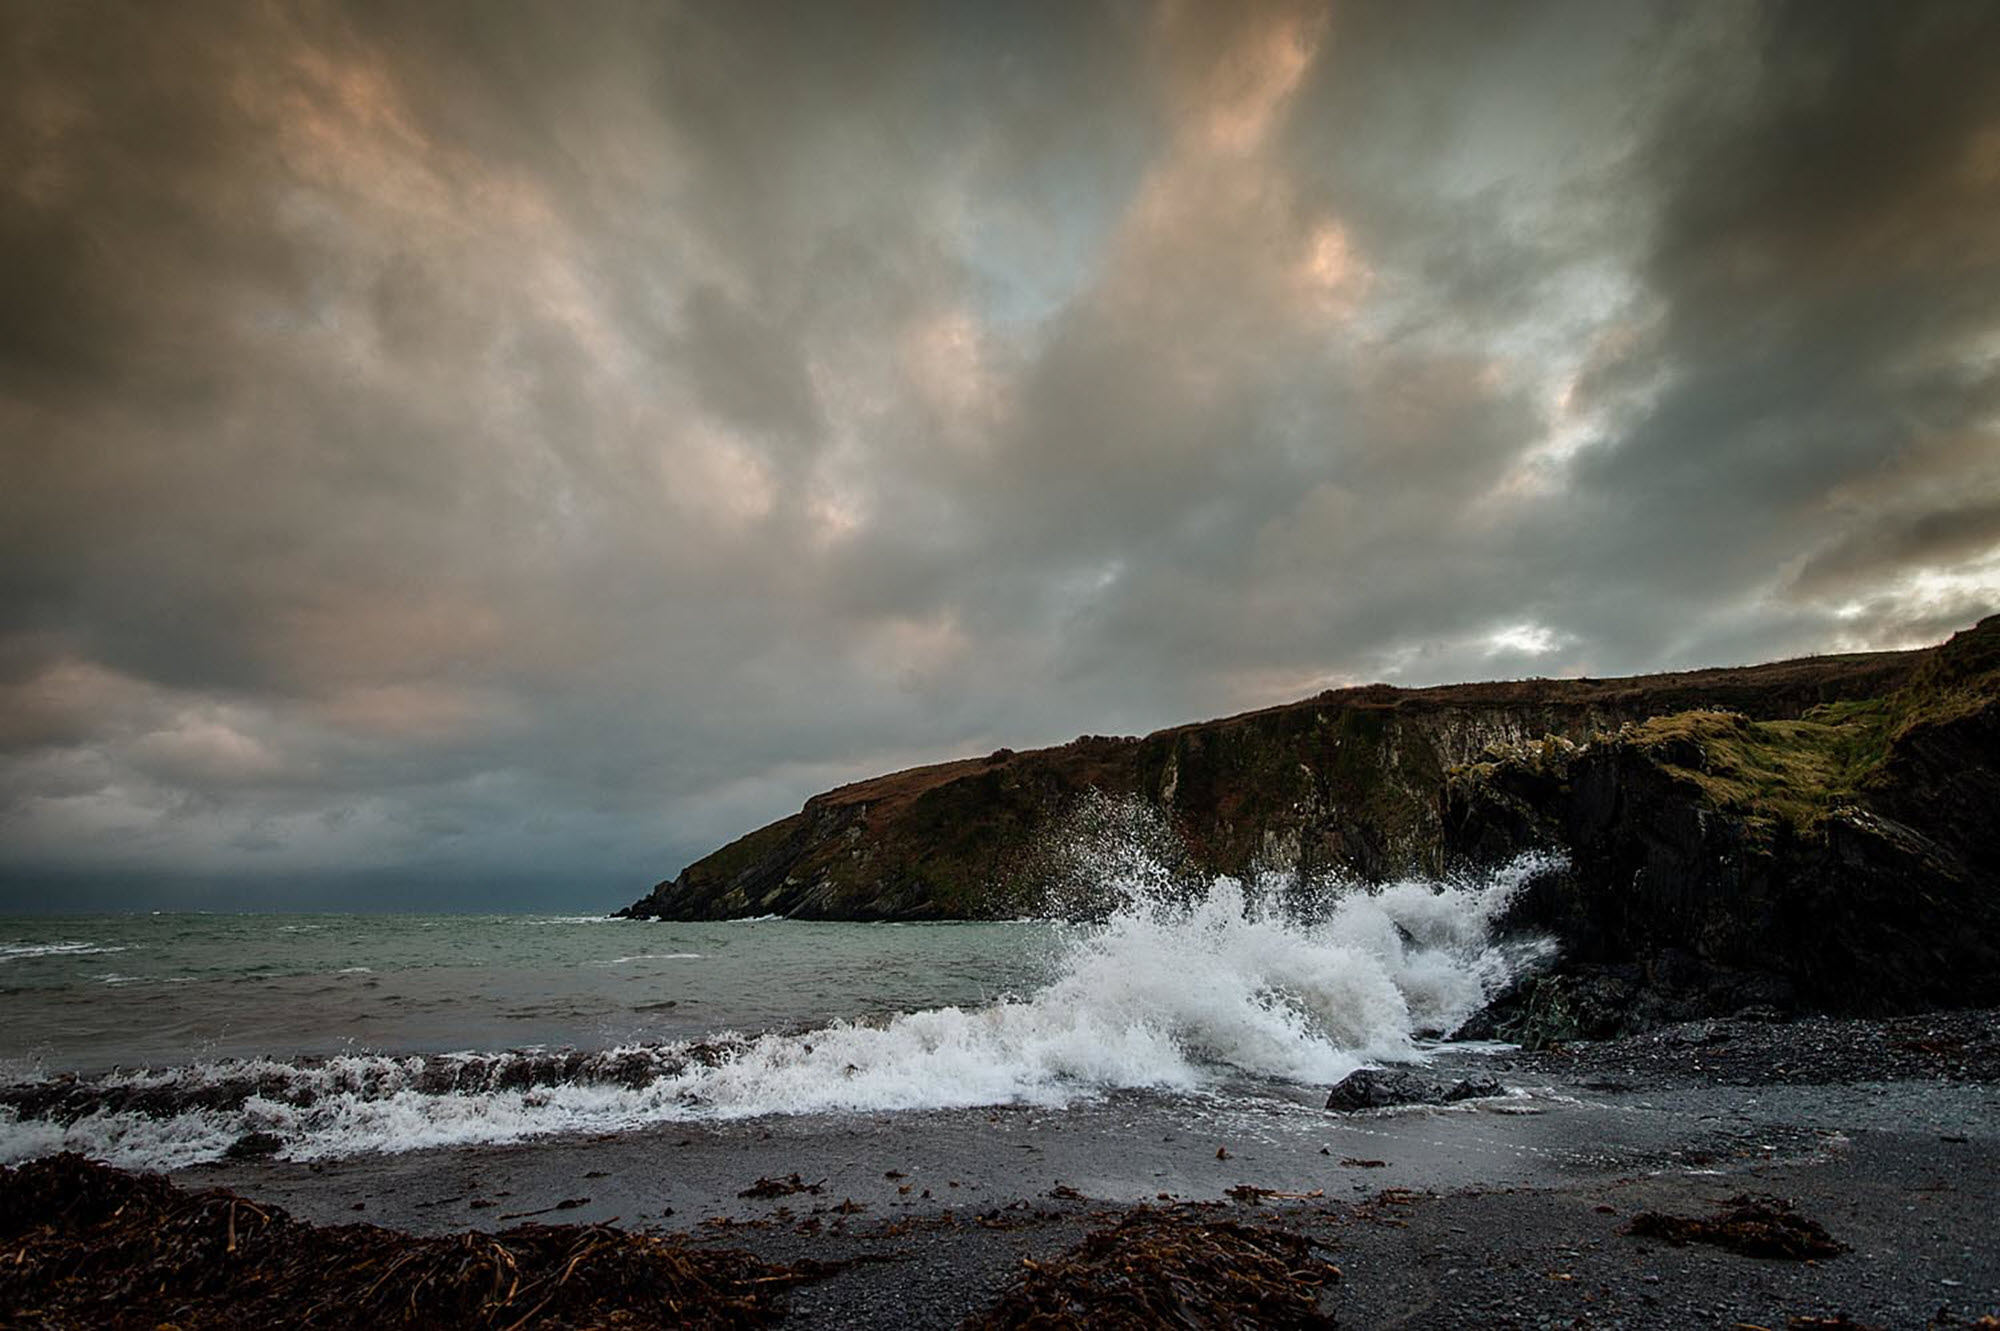 Sandscove, Wild Atlantic Way, Ardfield, Clonakilty, West Cork